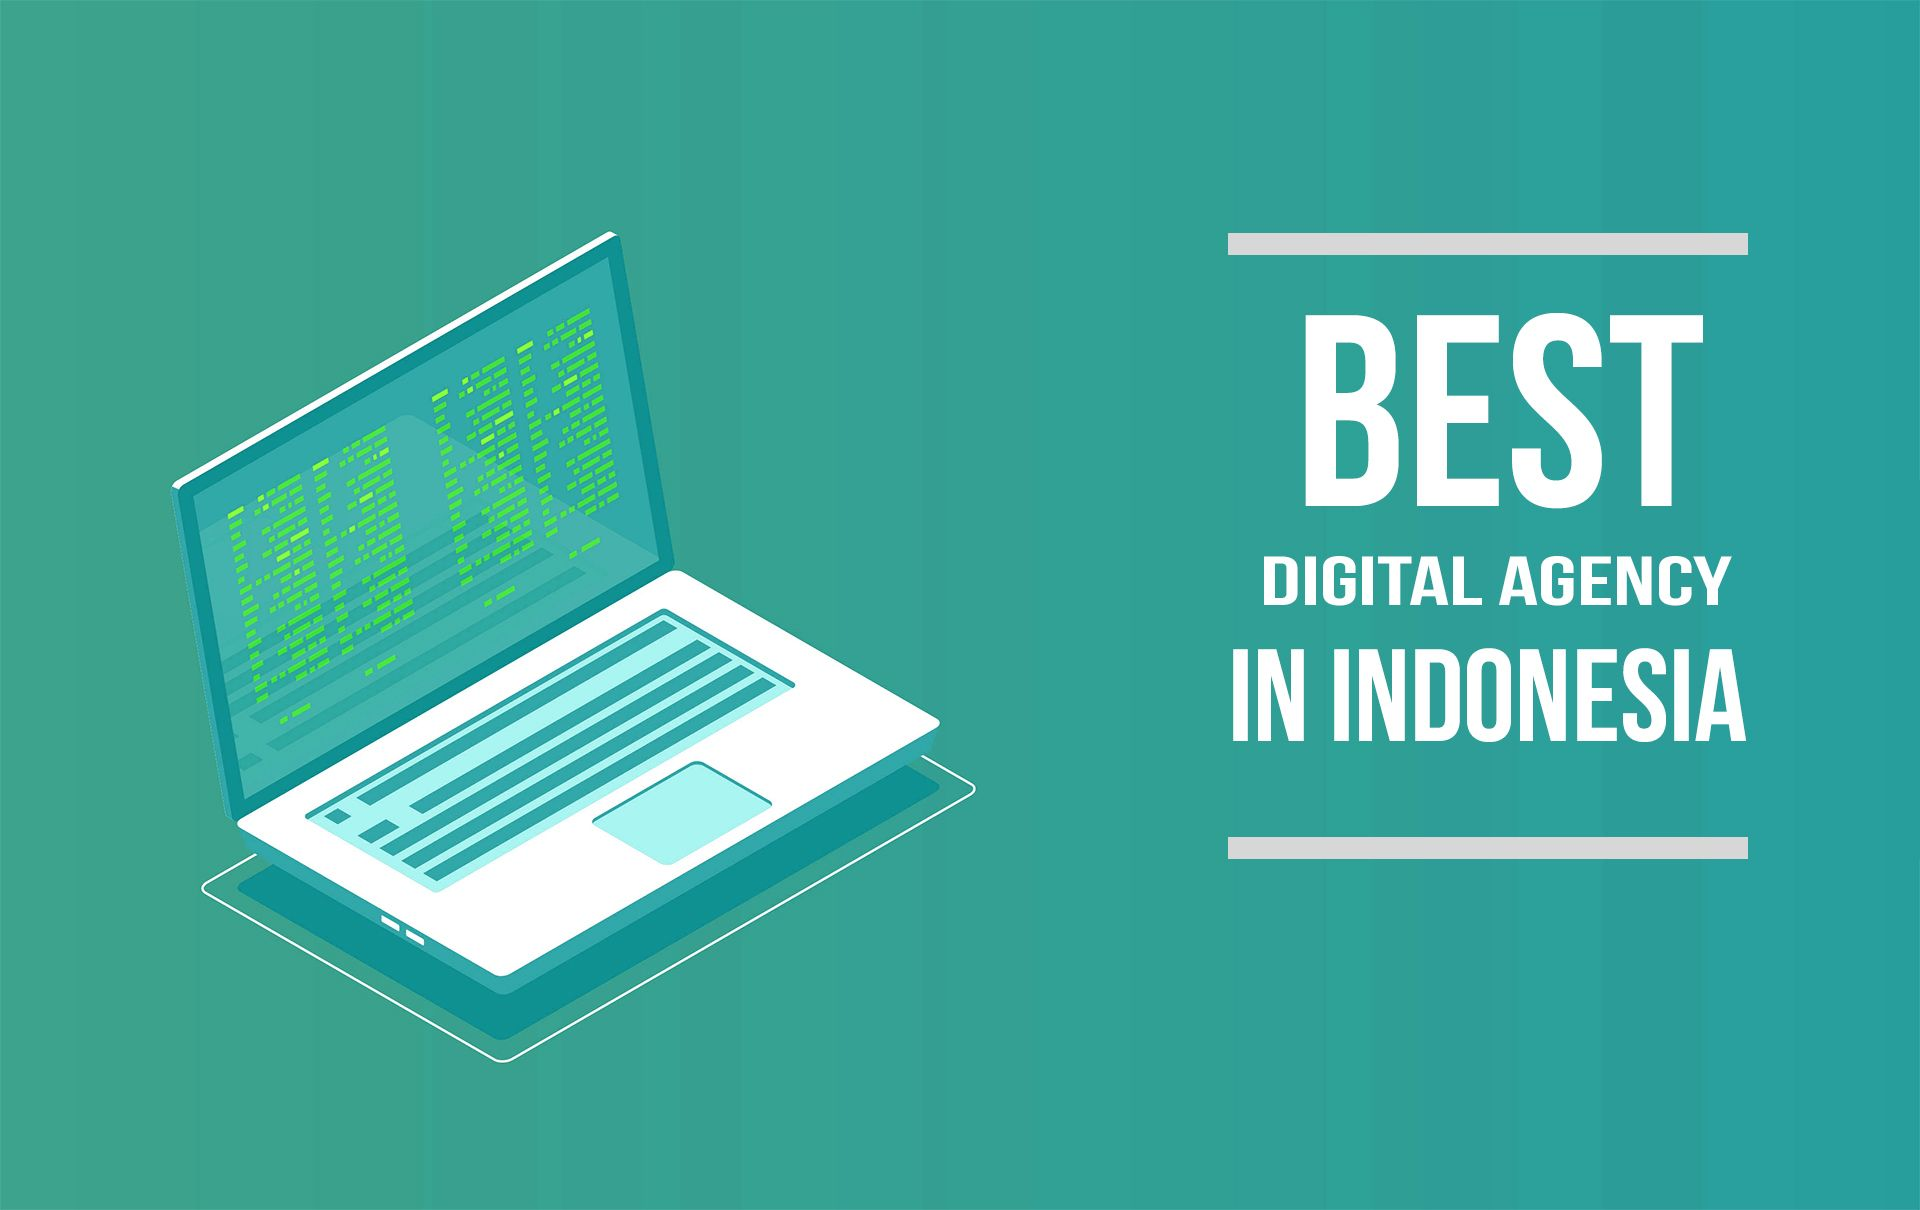 Best-Digital-Agency-Indonesia-compressor.jpg